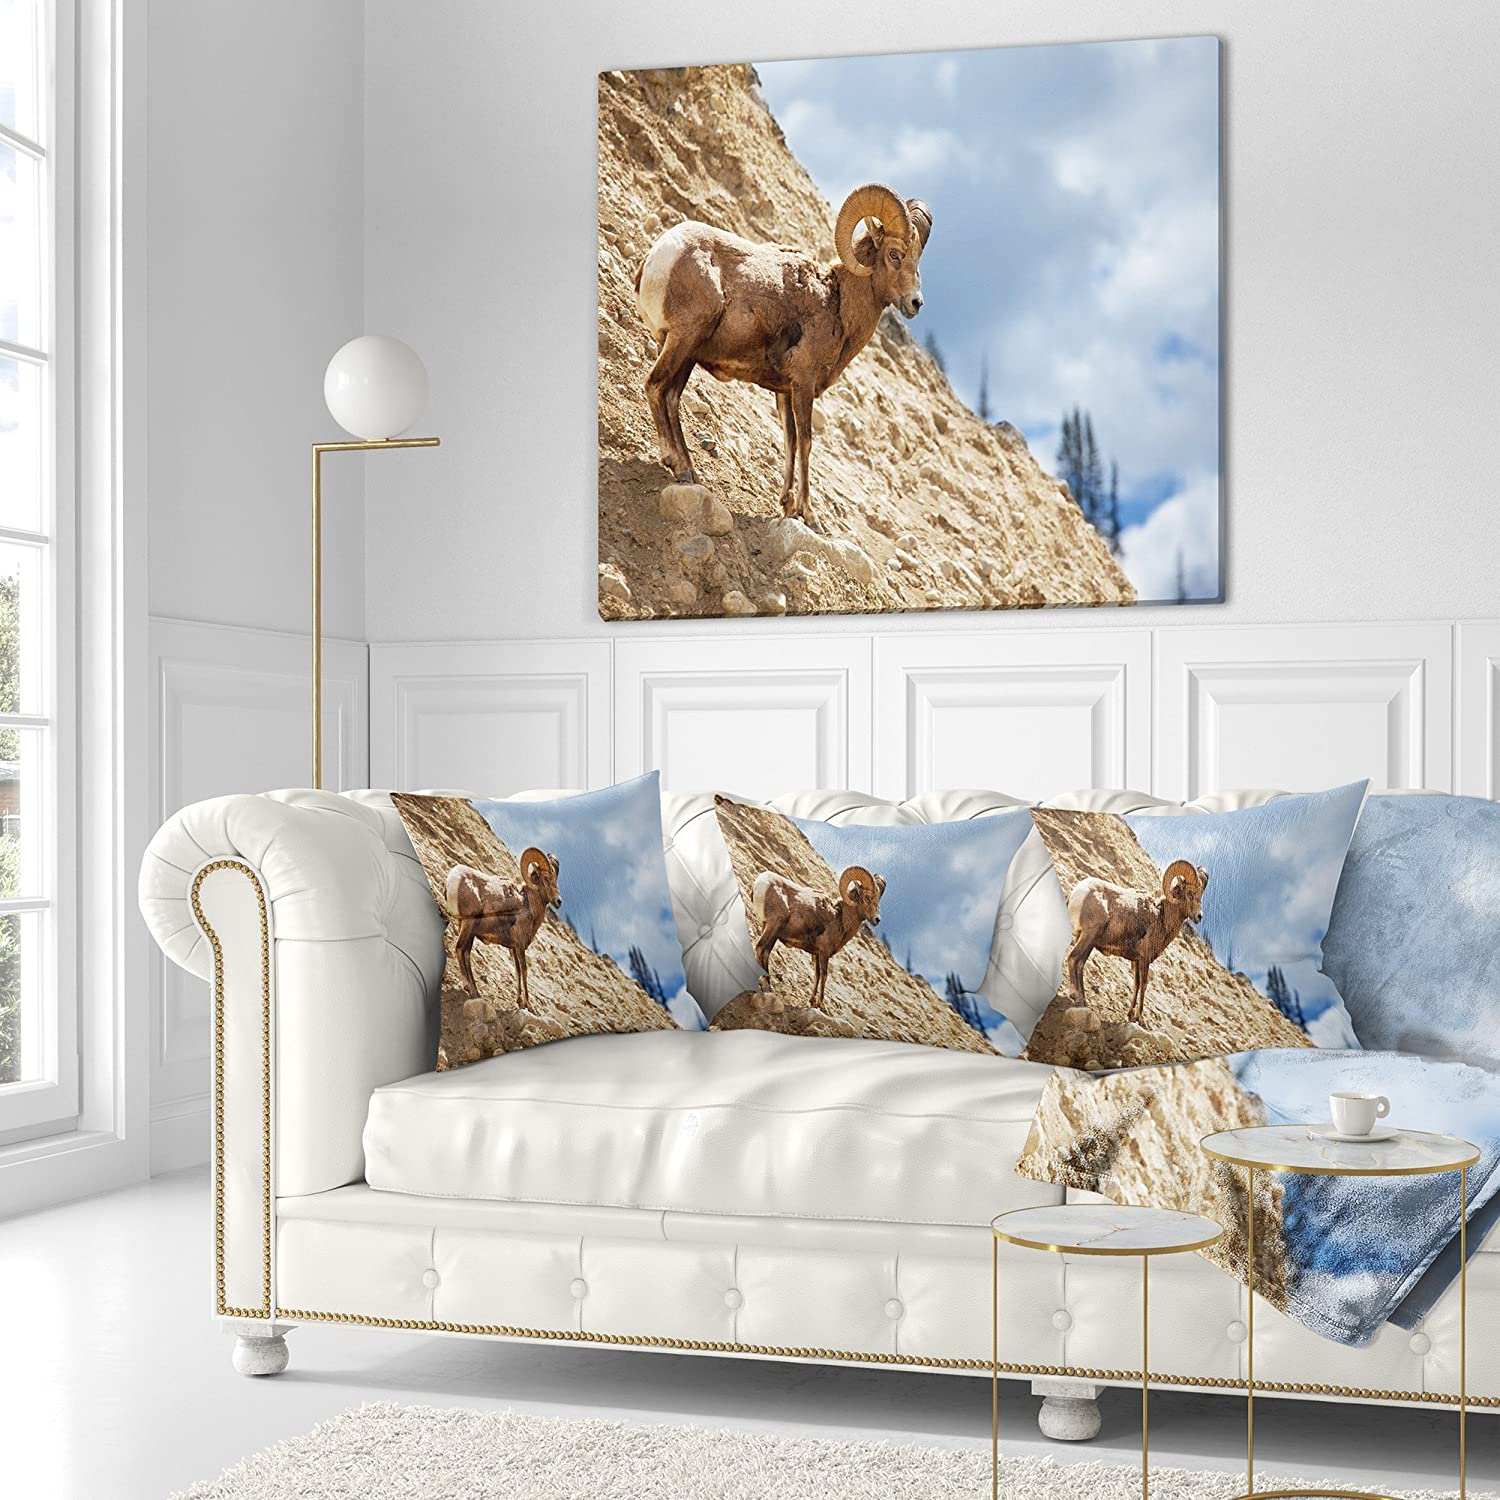 Insert Printed On Both Side x 26 in Designart CU12813-26-26 Single Goat on Rocky Mountain Animal Cushion Cover for Living Room in Sofa Throw Pillow 26 in